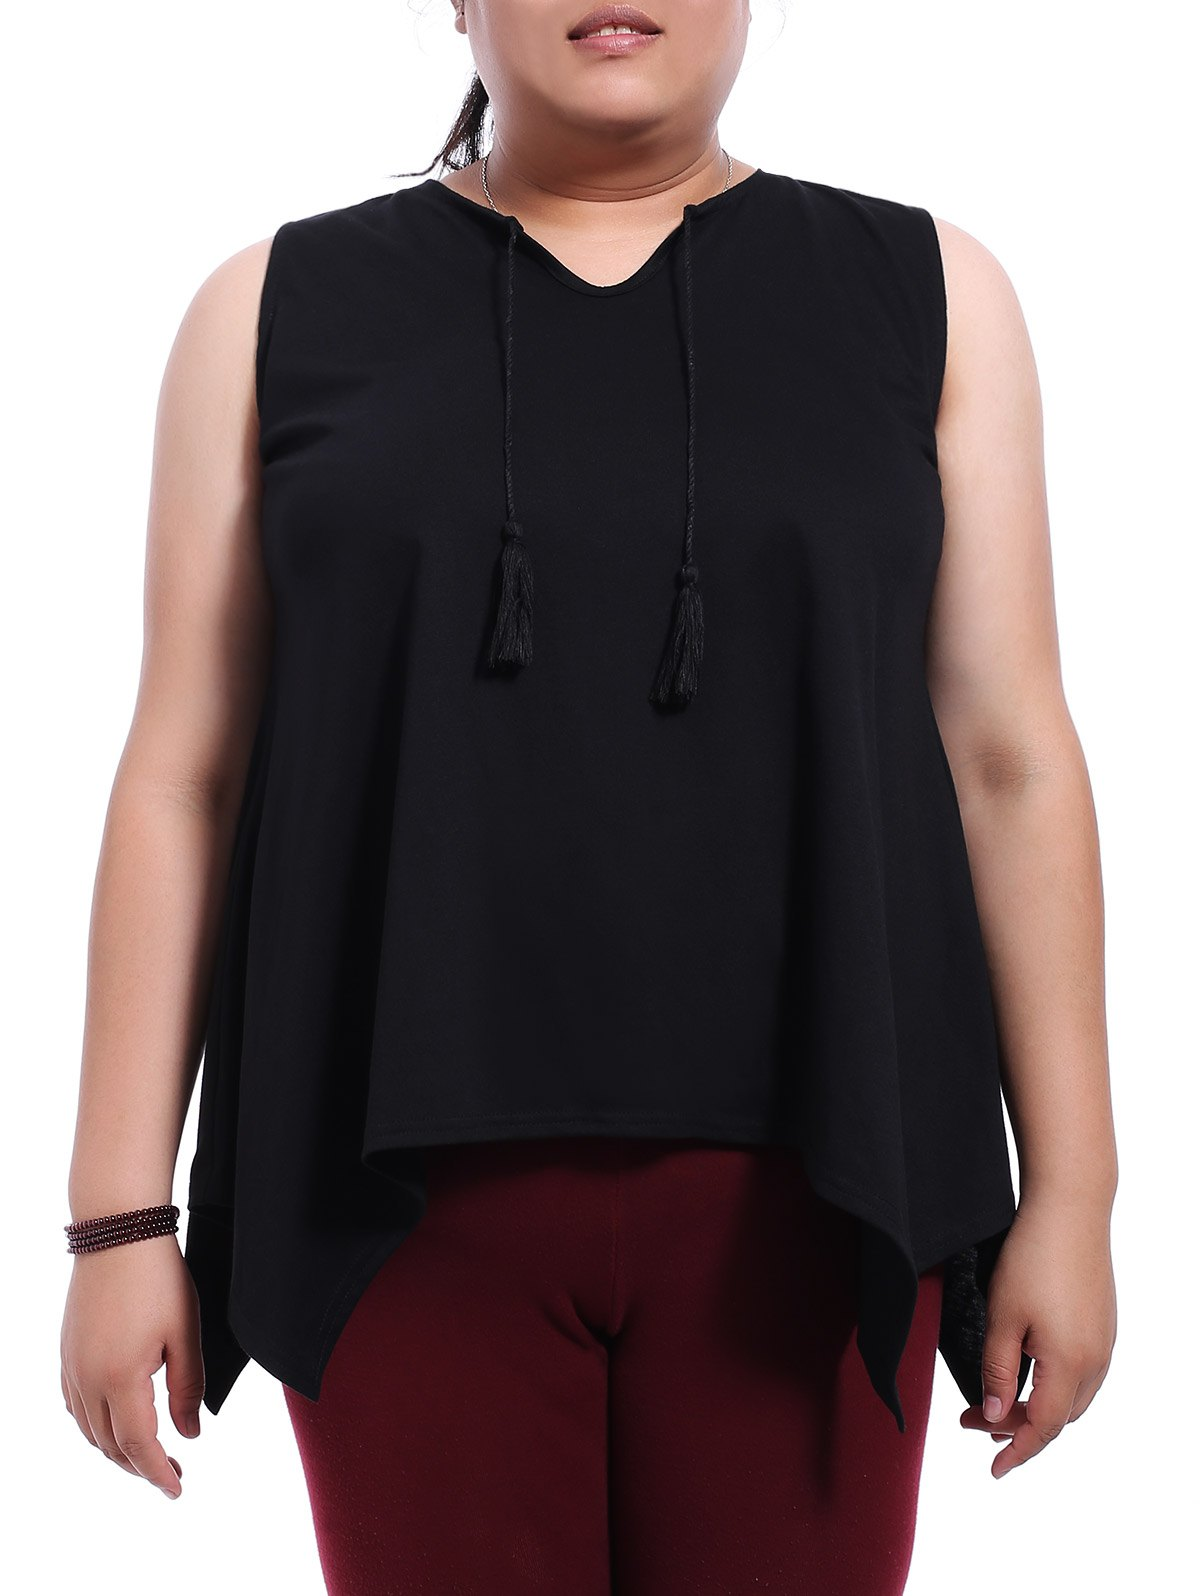 Stylish Plus Size Jewel Neck Black Asymmetrical Top For Women DRESSFO